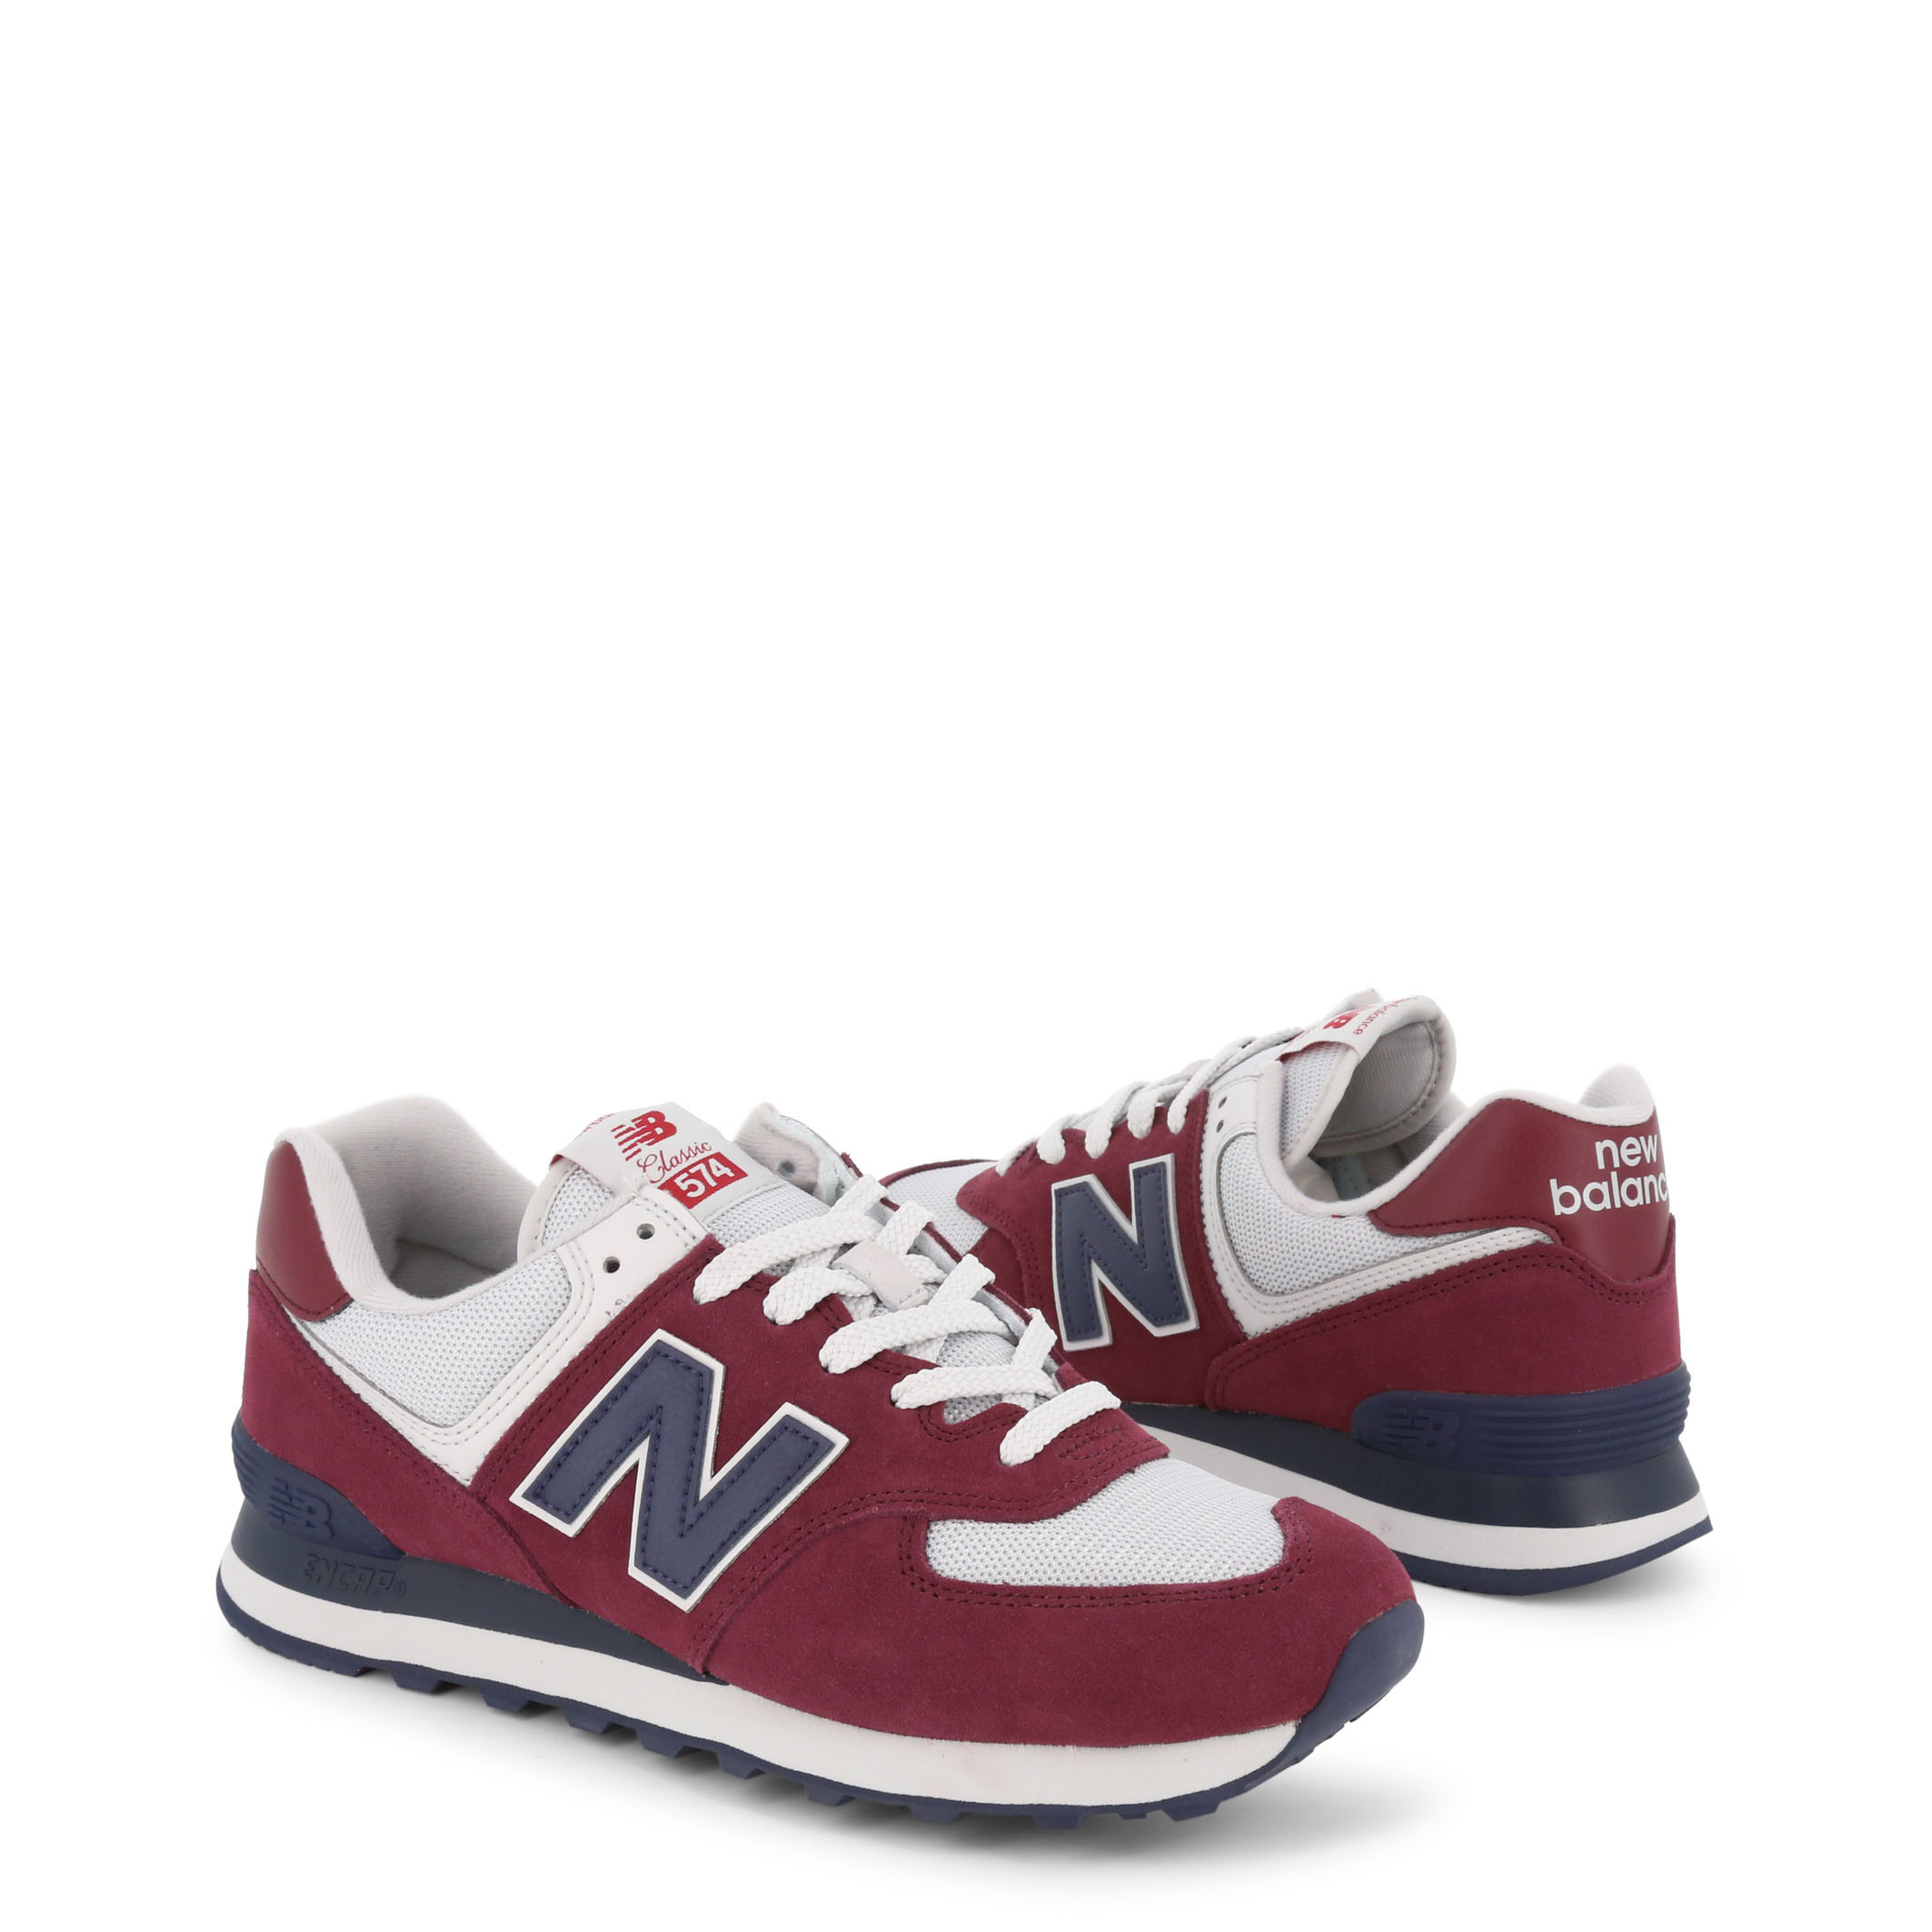 Baskets / Sport  New balance ML574 red